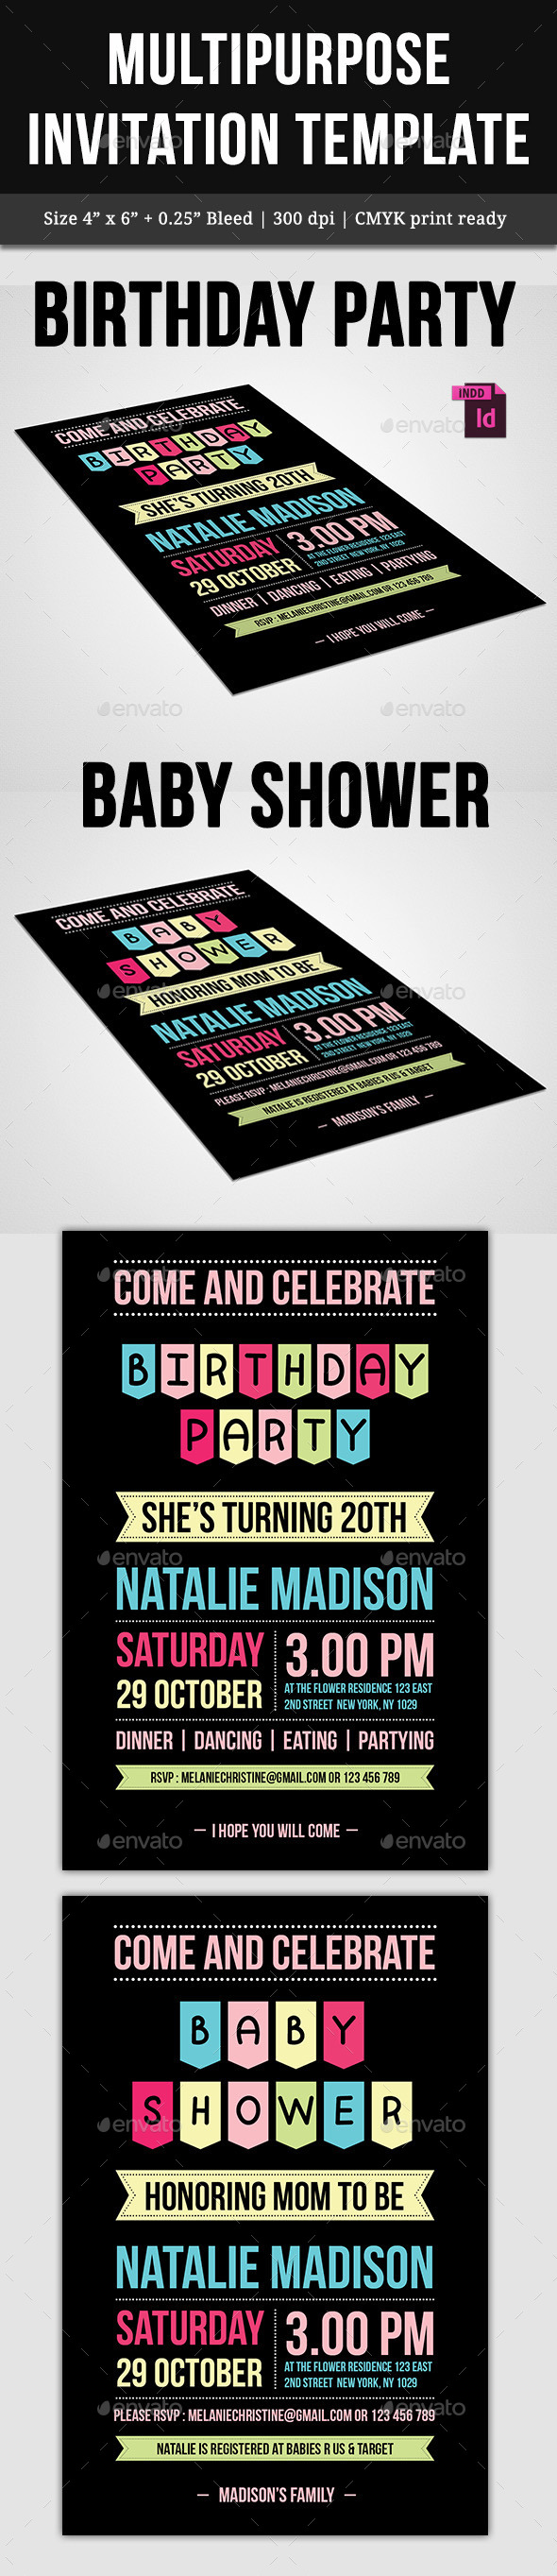 Multipurpose Invitation Template - Cards & Invites Print Templates